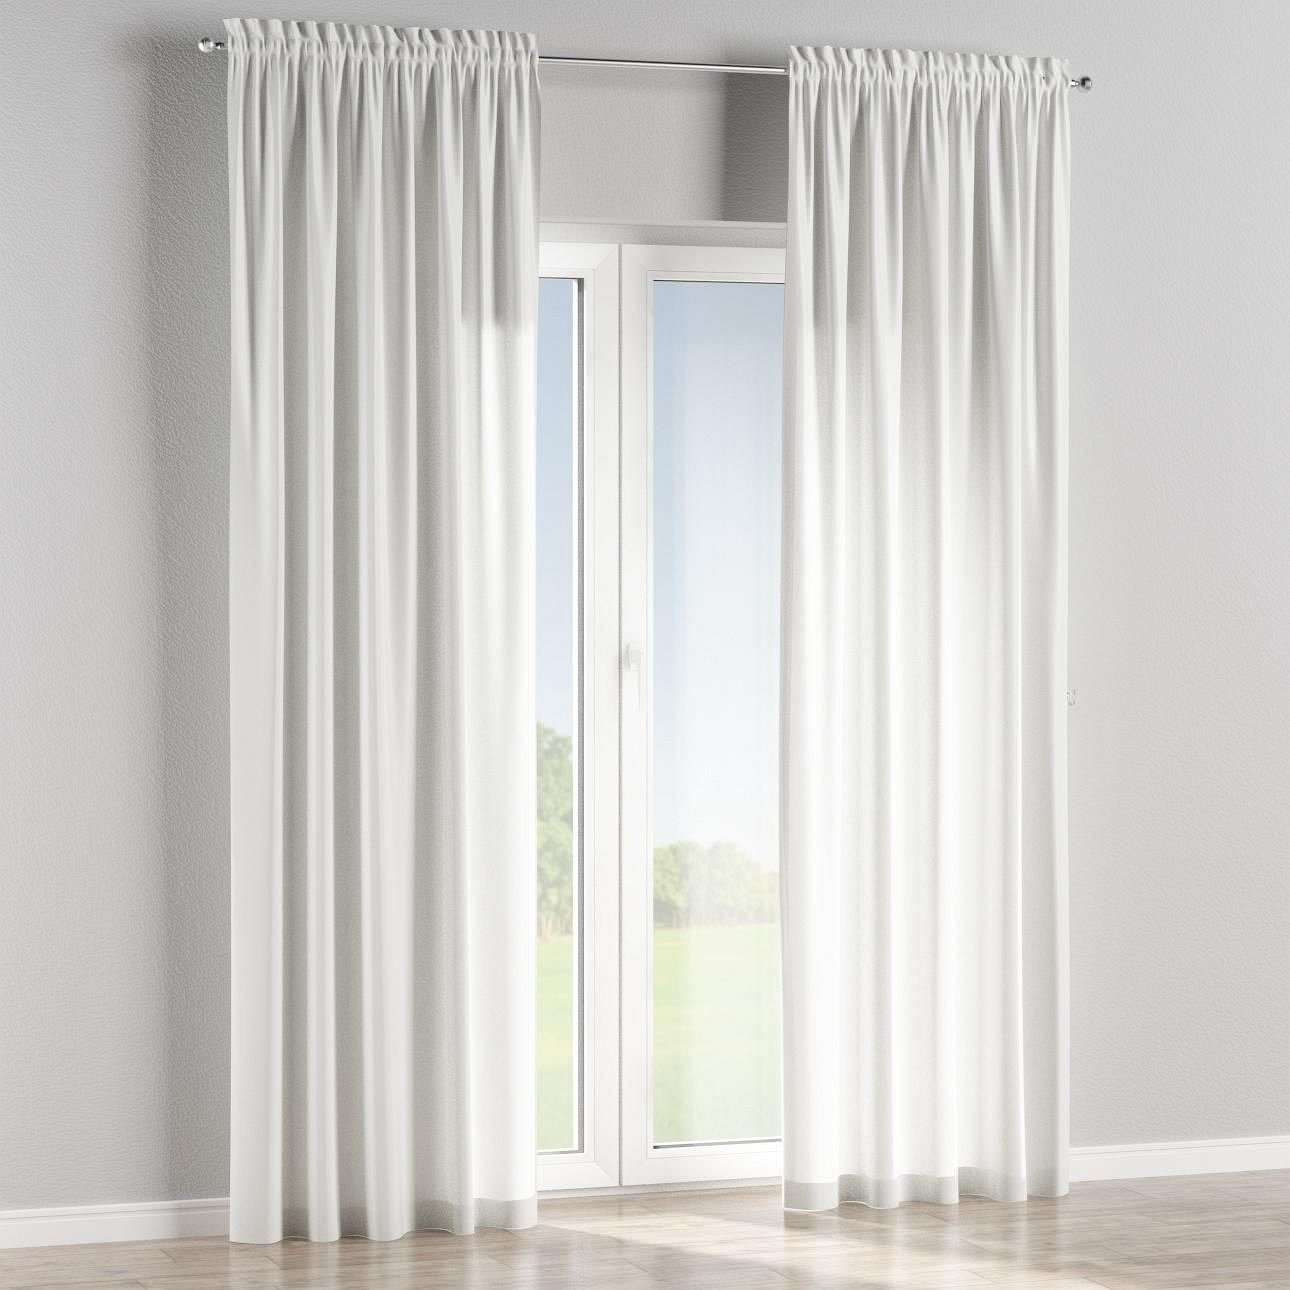 Slot and frill curtains in collection Taffeta , fabric: 103-88